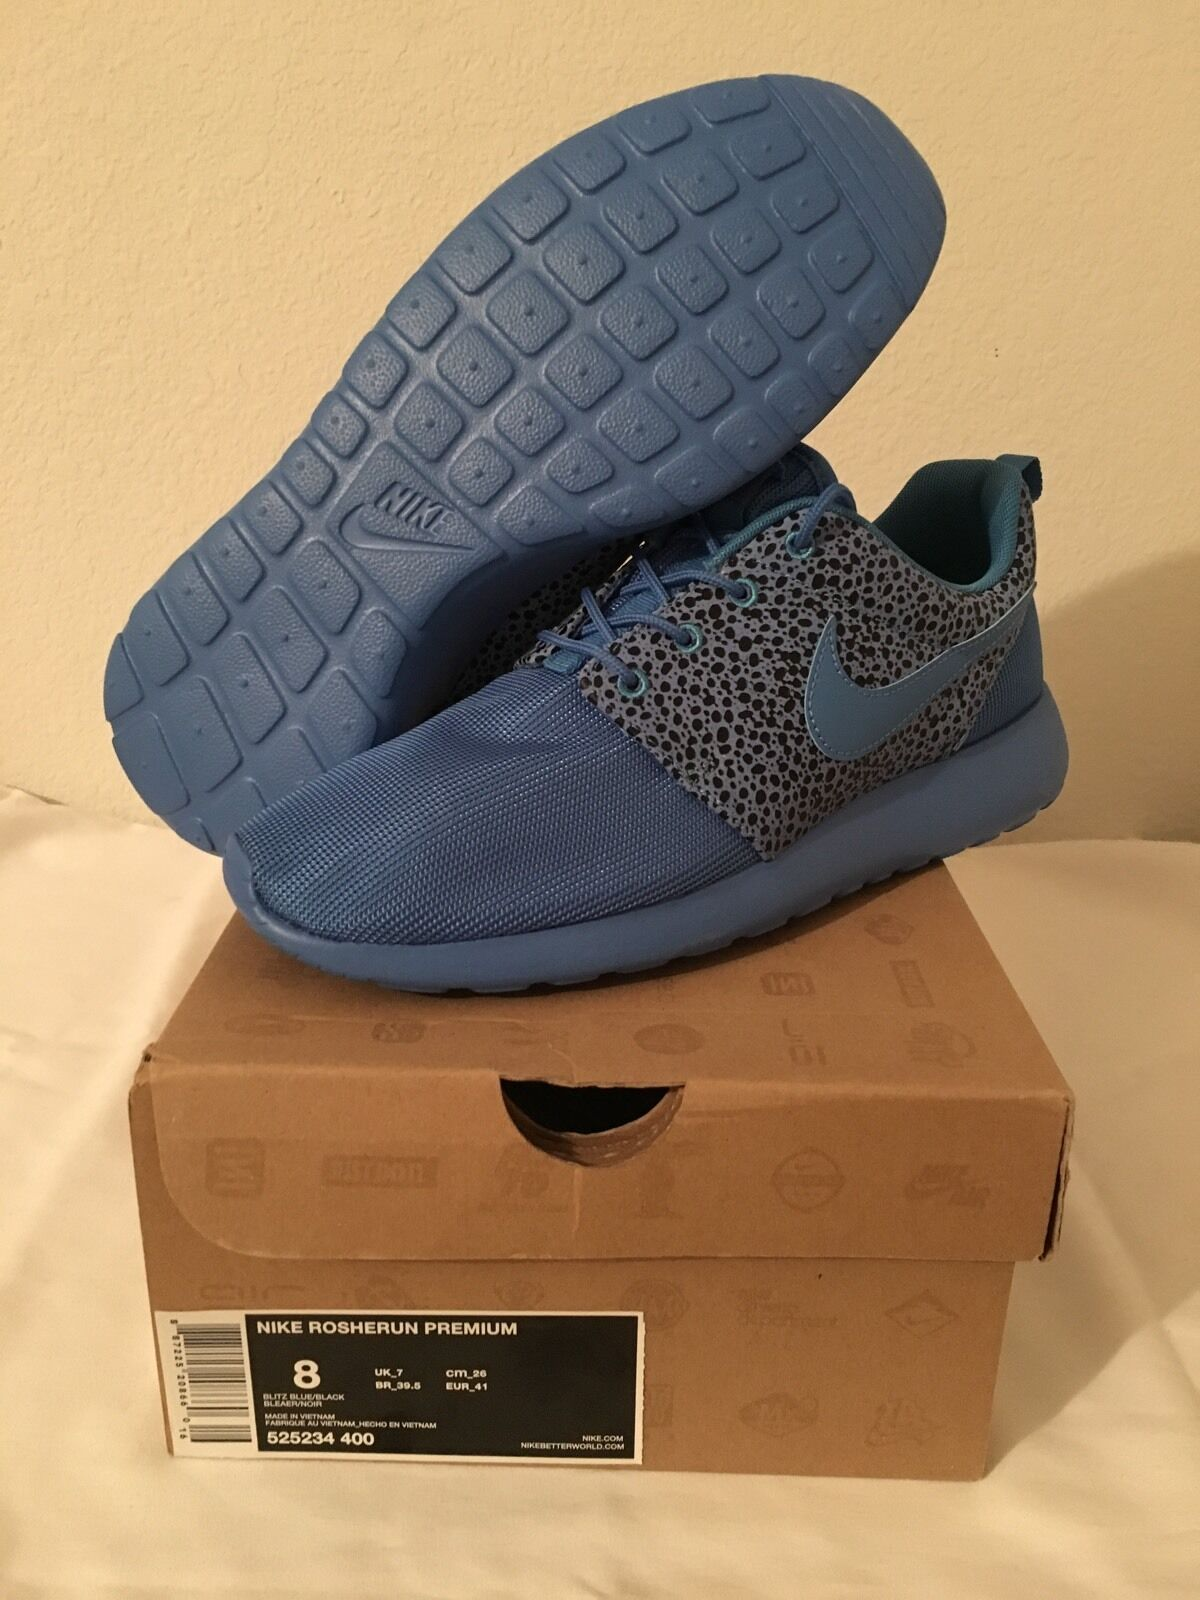 Men's Nike Roshe Run Premium Safari Size 8 (525234 400)